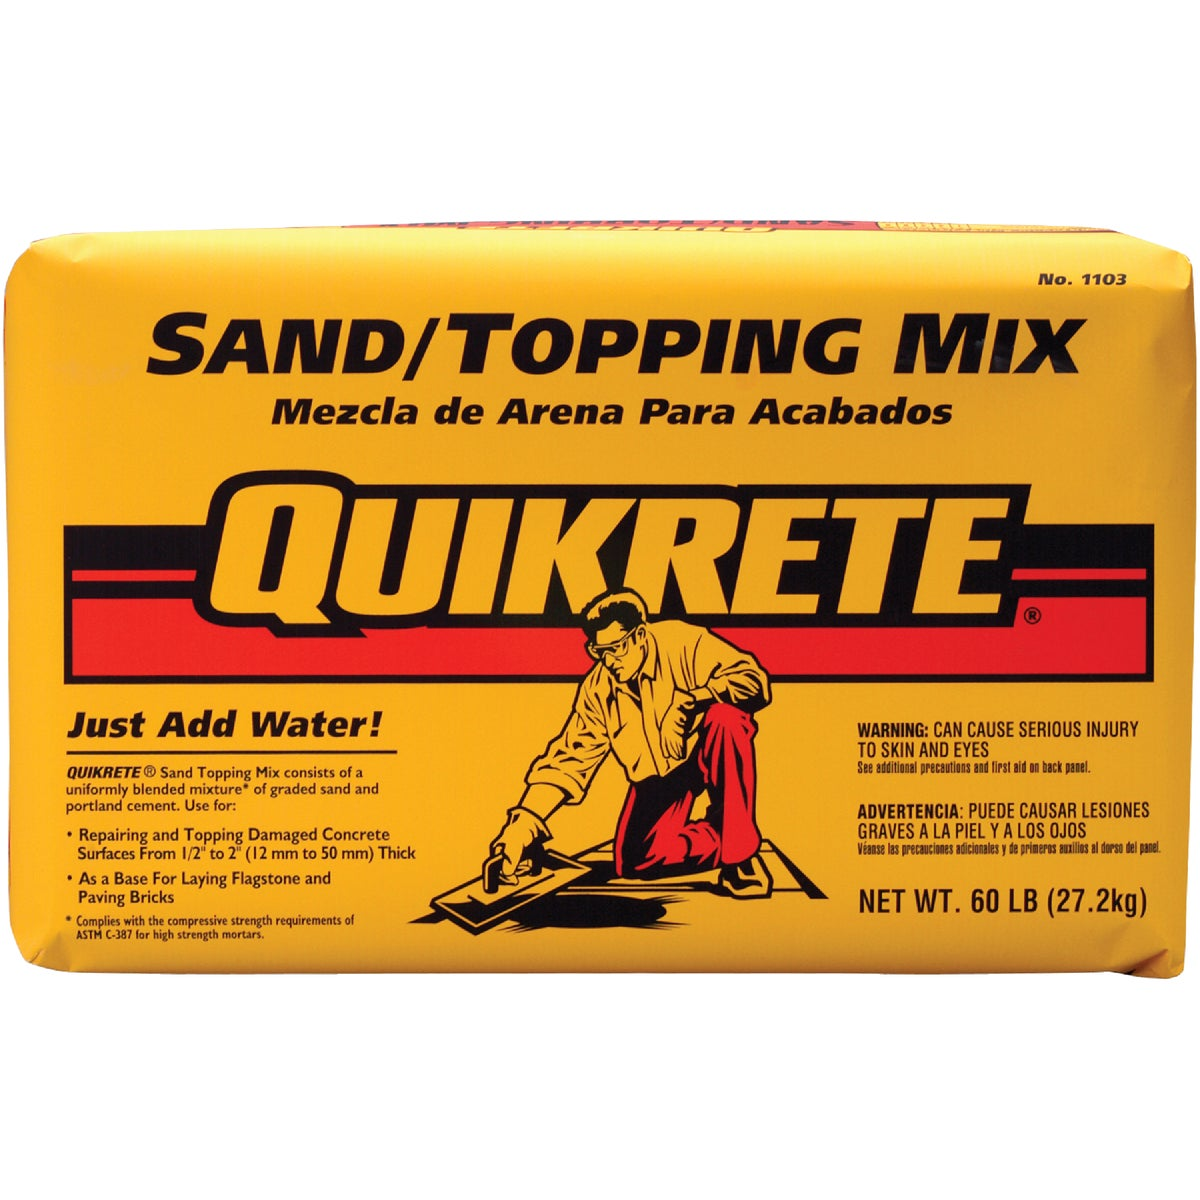 60LB SAND MIX - 110360 by Quikrete Co